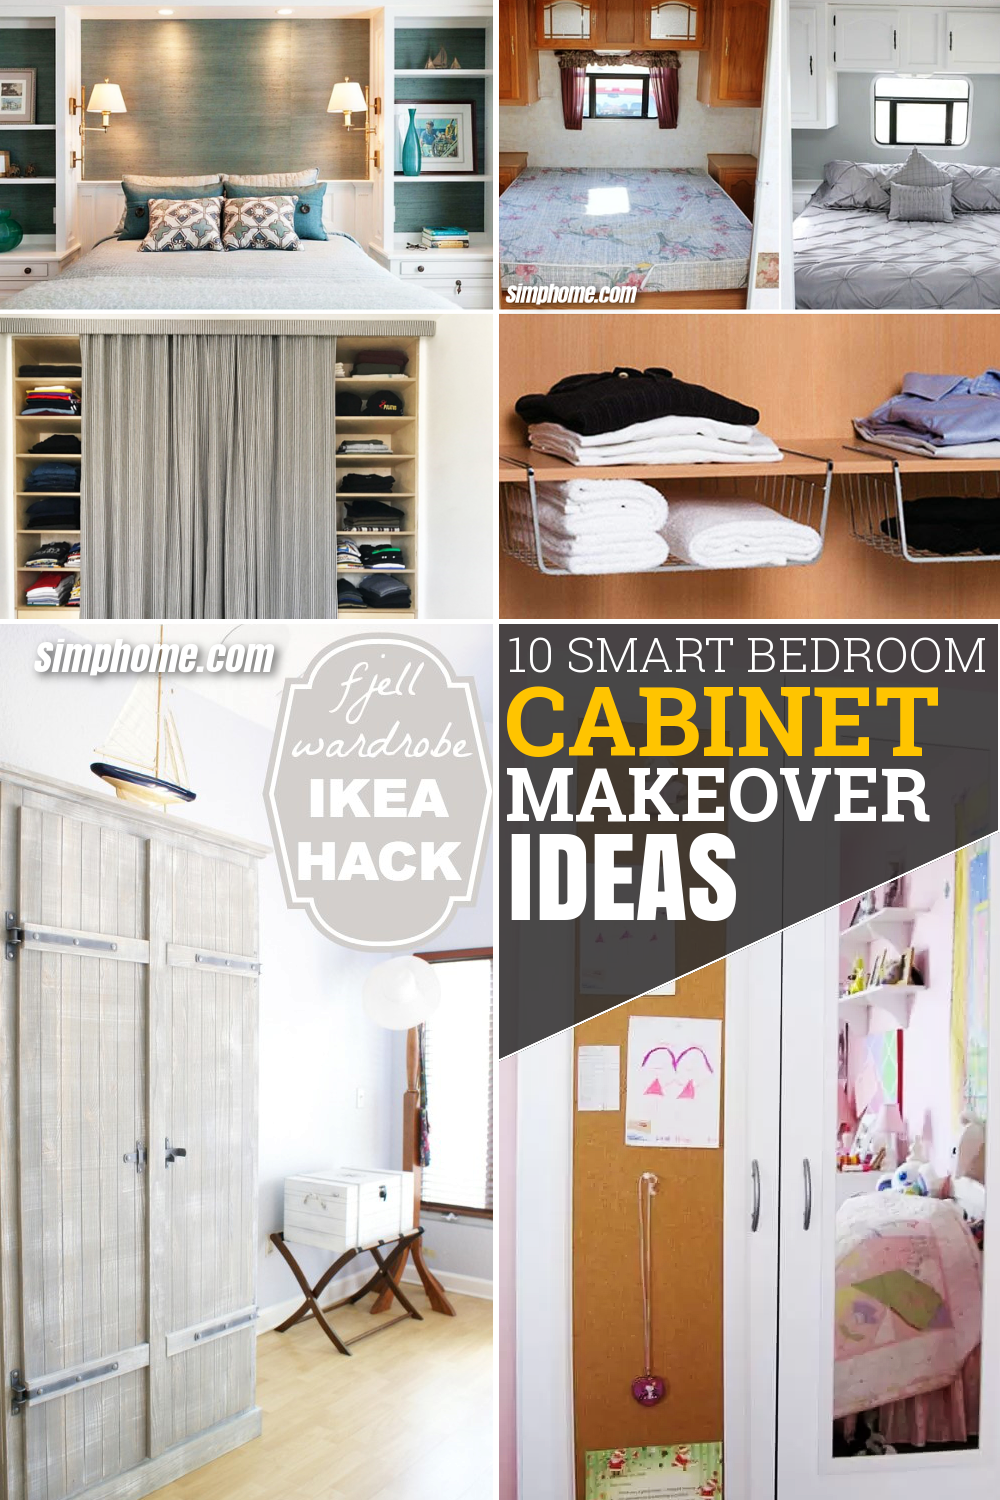 10 Smart Bedroom Cabinet Makeover Ideas via Simphome.com Featured Pinterest image